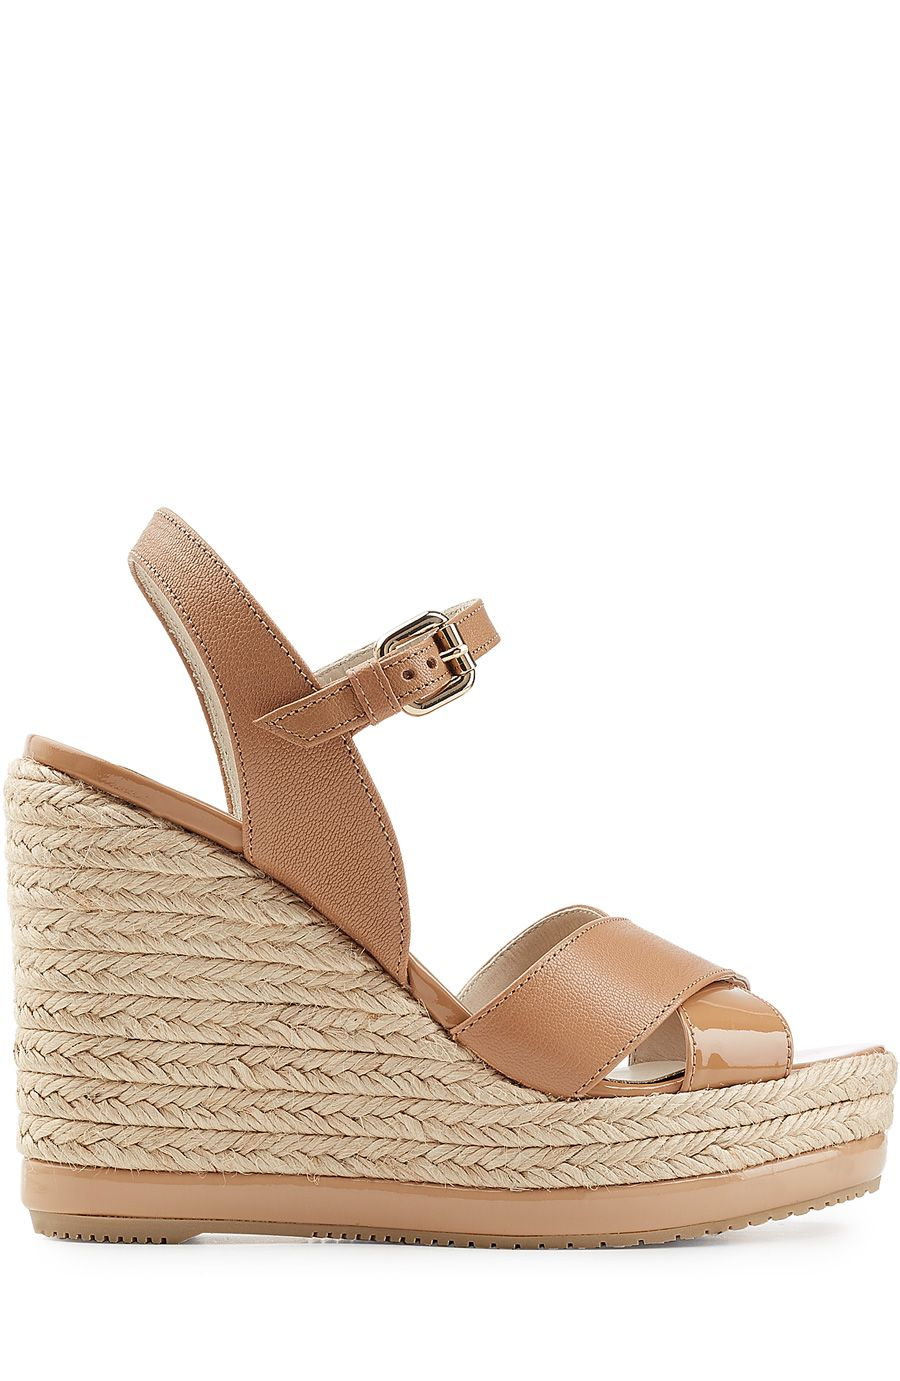 484255a7785b HOGAN Leather Wedge Sandals.  hogan  shoes  wedges